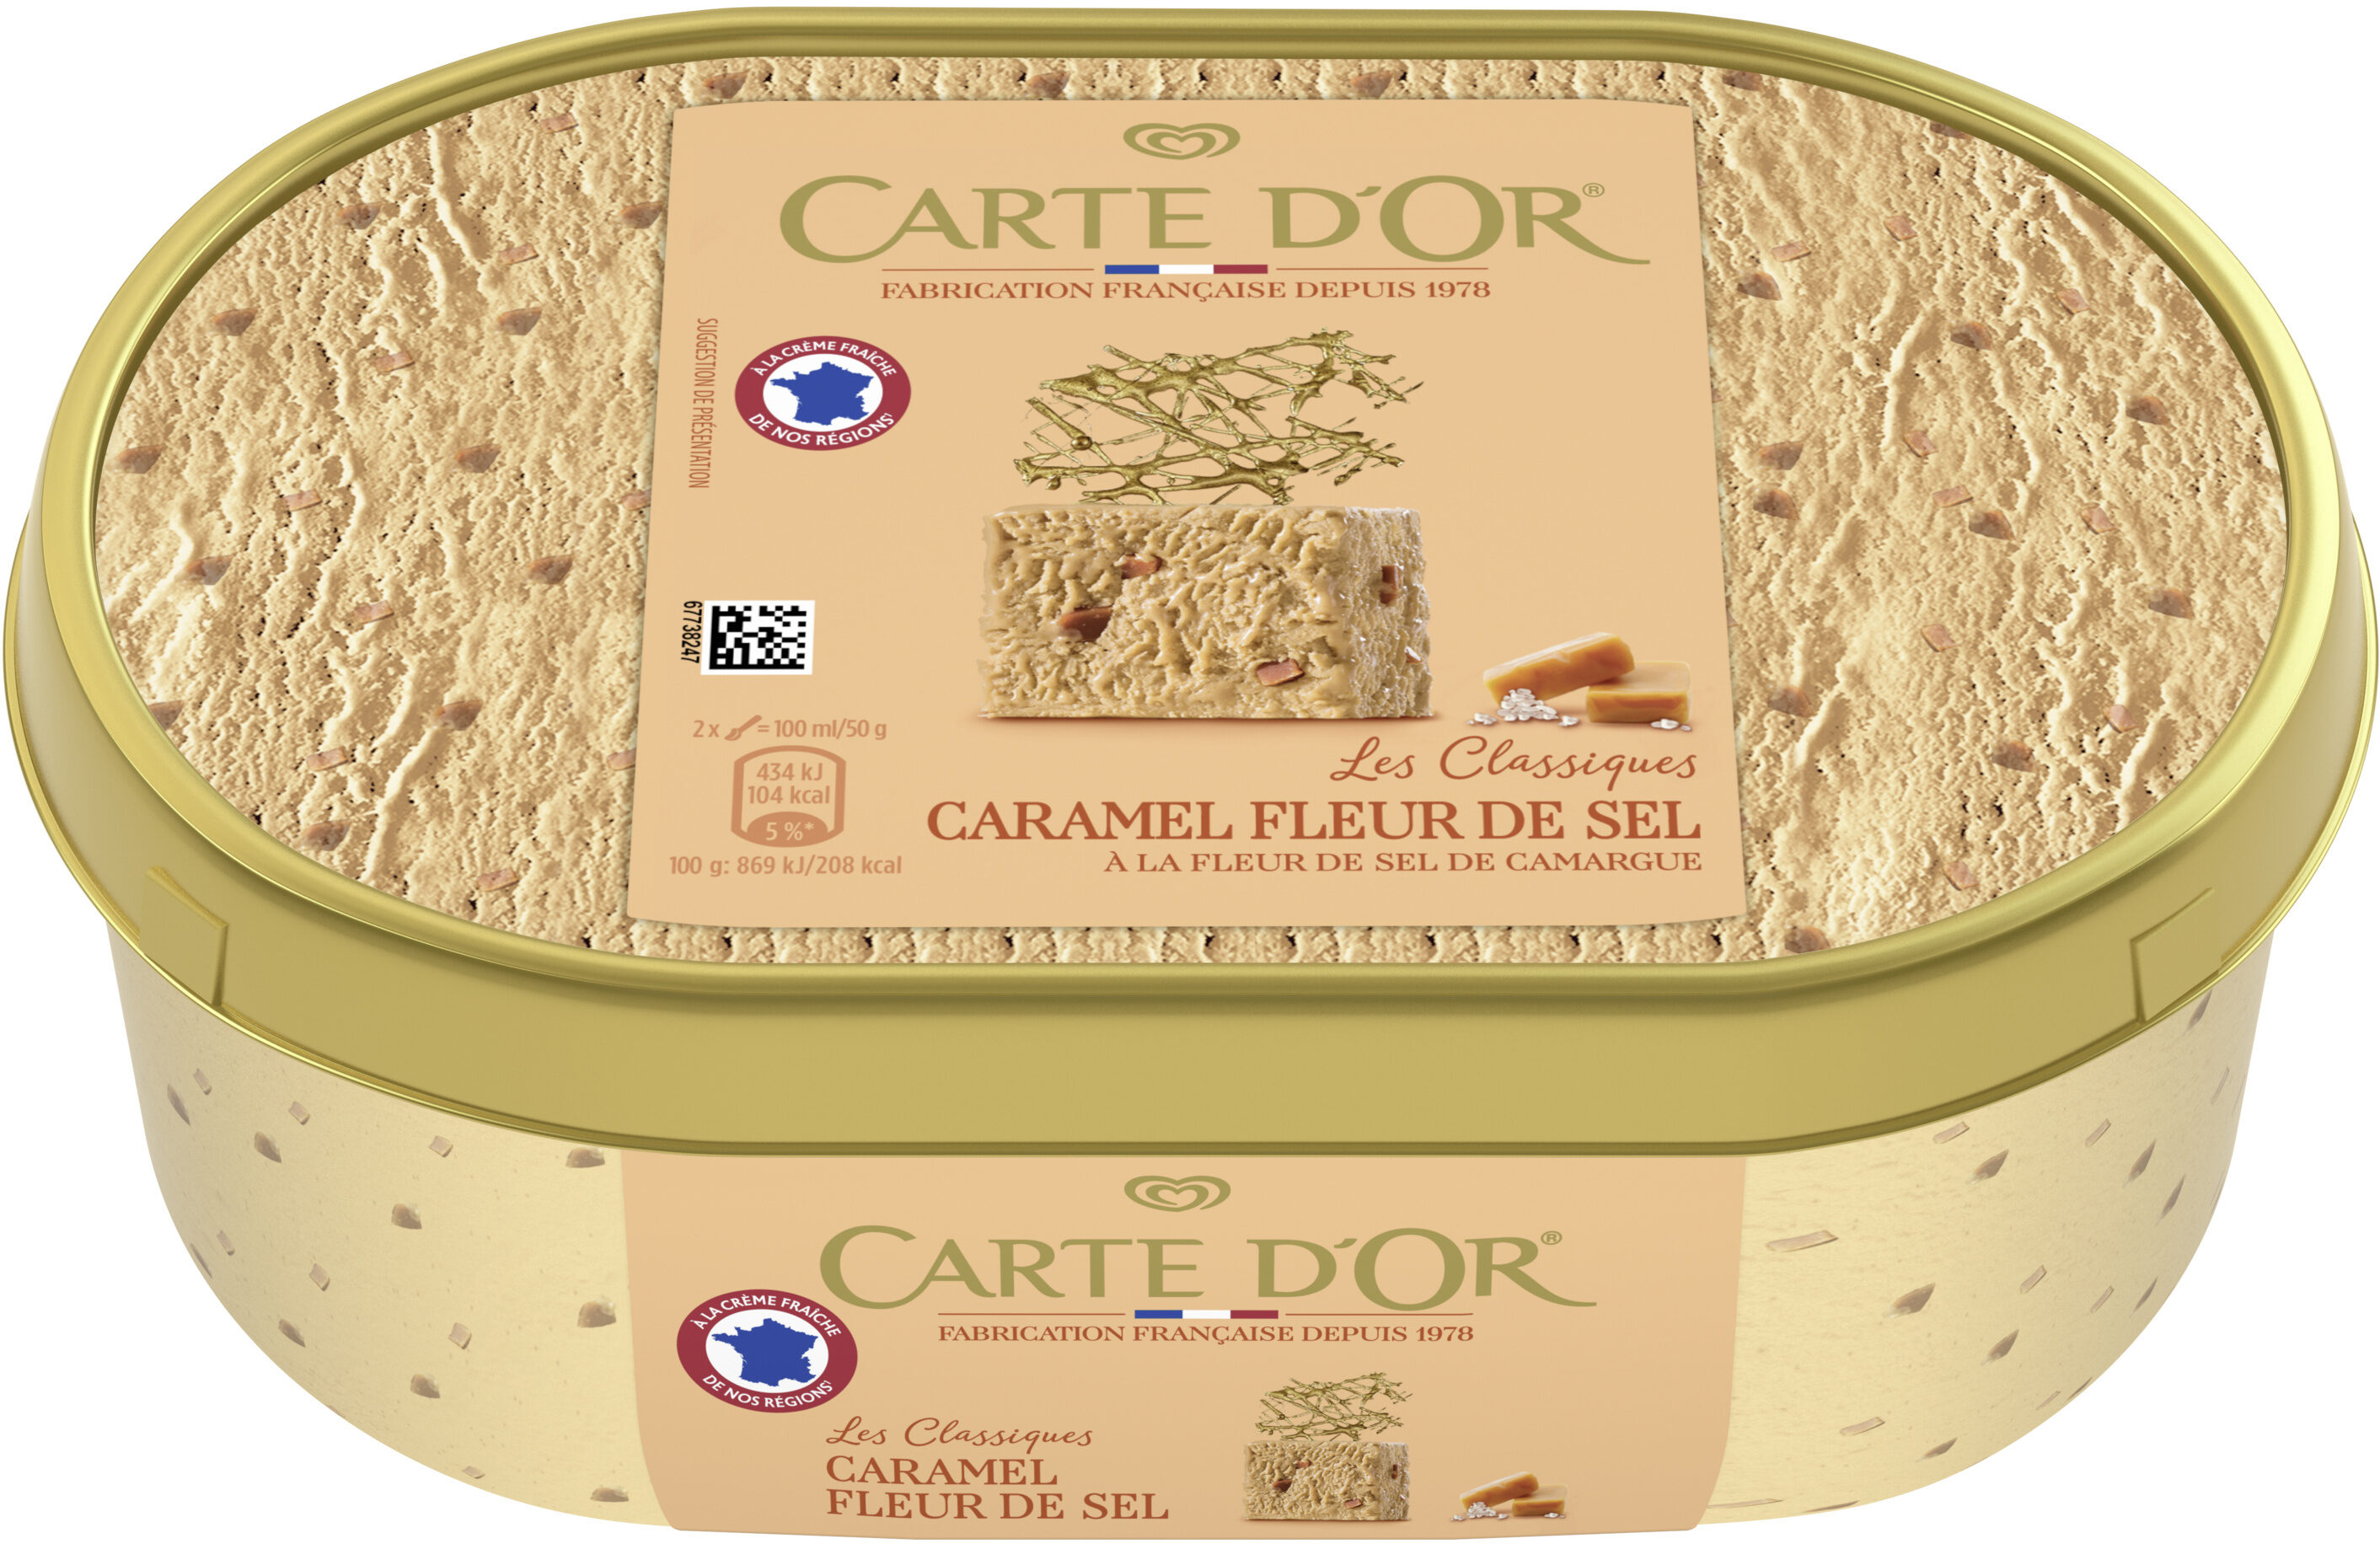 Carte D'or Les Authentiques Glace Caramel Fleur de Sel 1l - Producto - fr